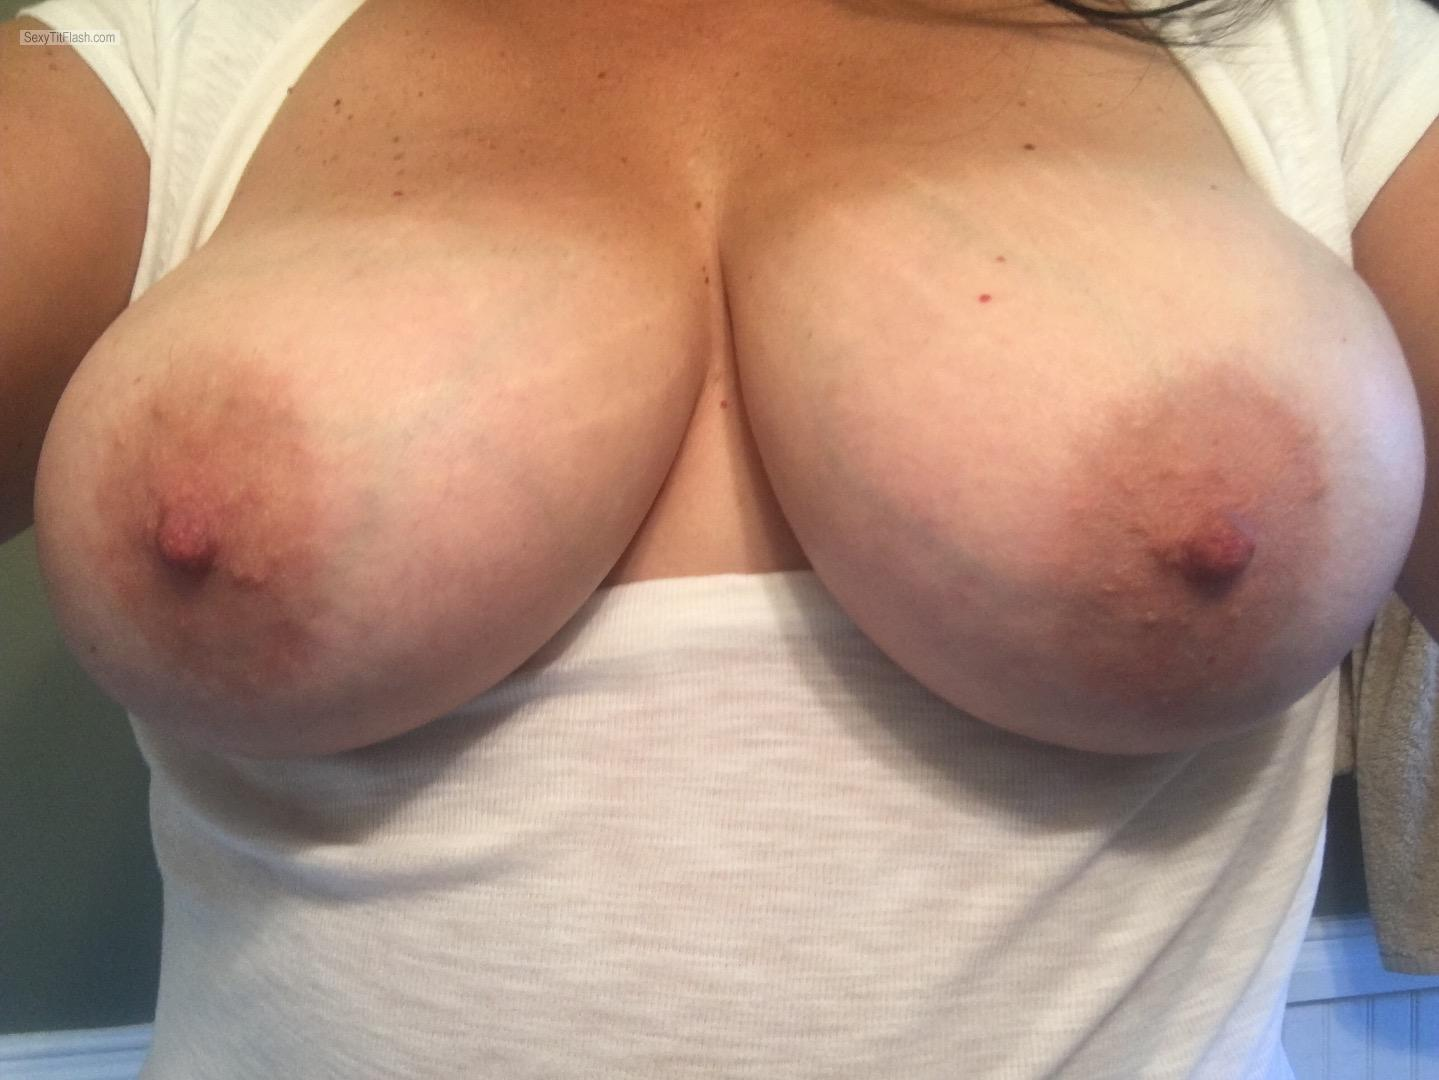 Tit Flash: My Big Tits - Topless Shannon from United States